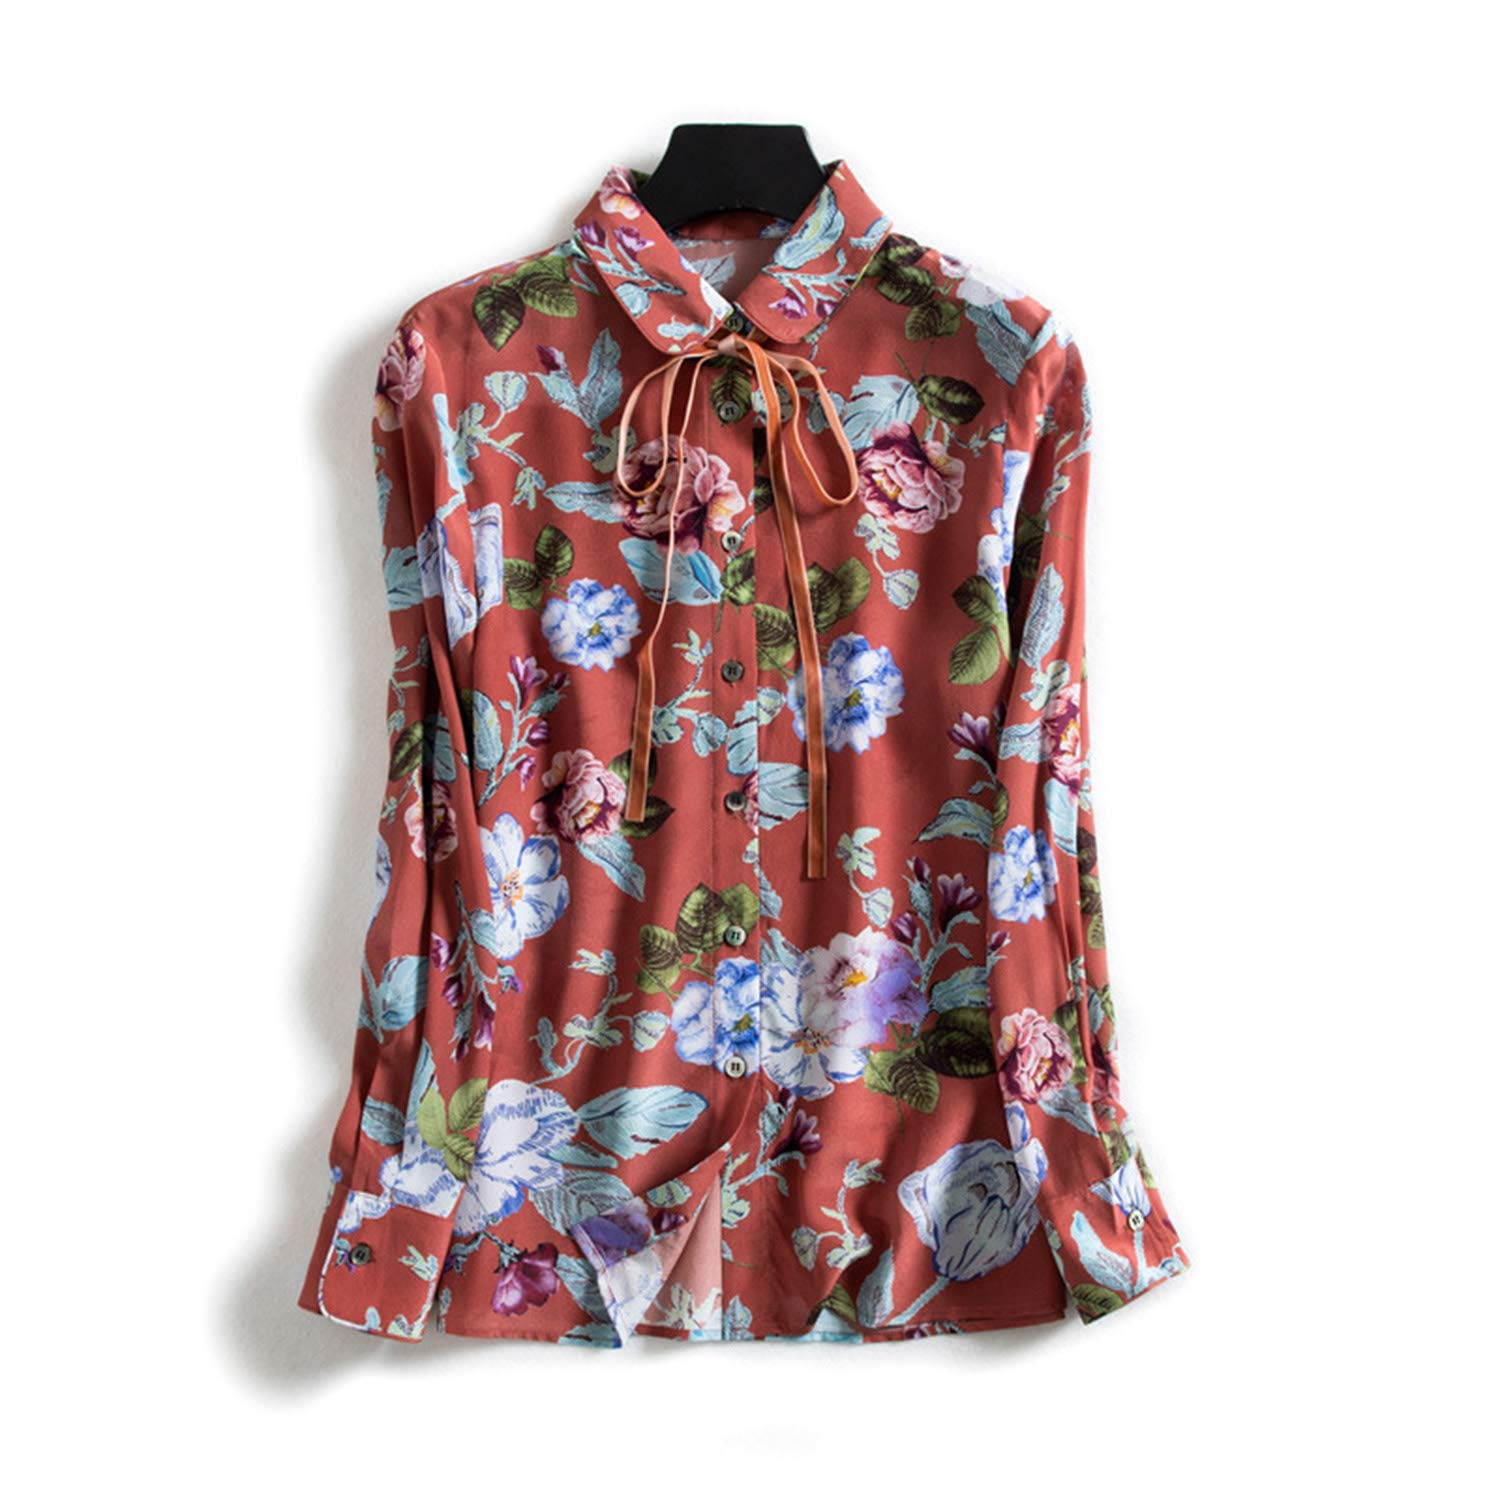 Floral Printed Silk Shirt, Ladies Lapel Bow Top, Casual Blouse